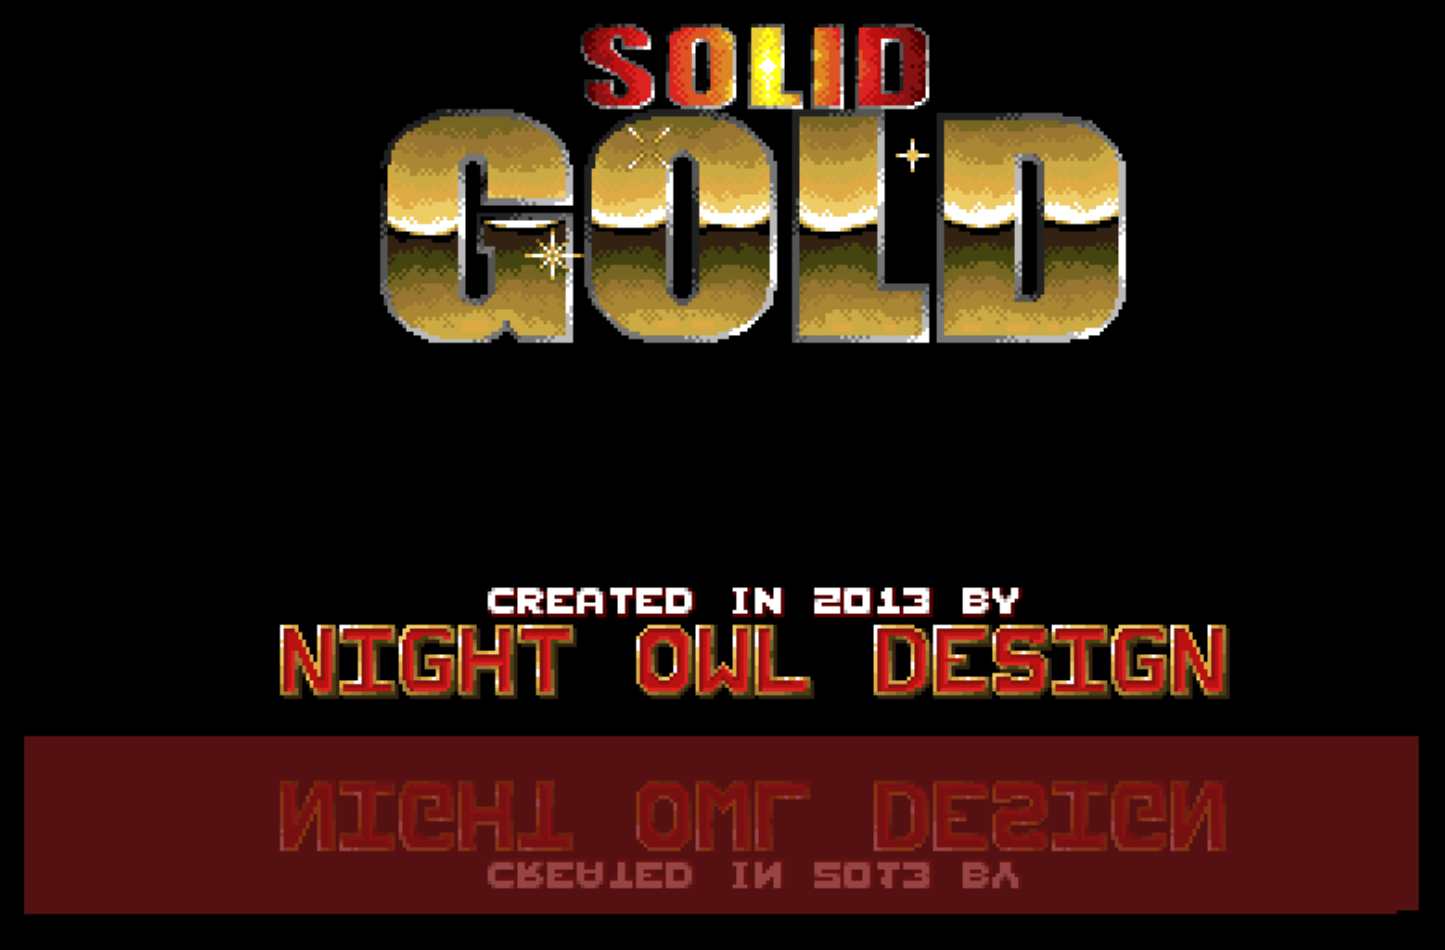 Concours du mois (mars 2021) - Solid Gold - Night Owl Design